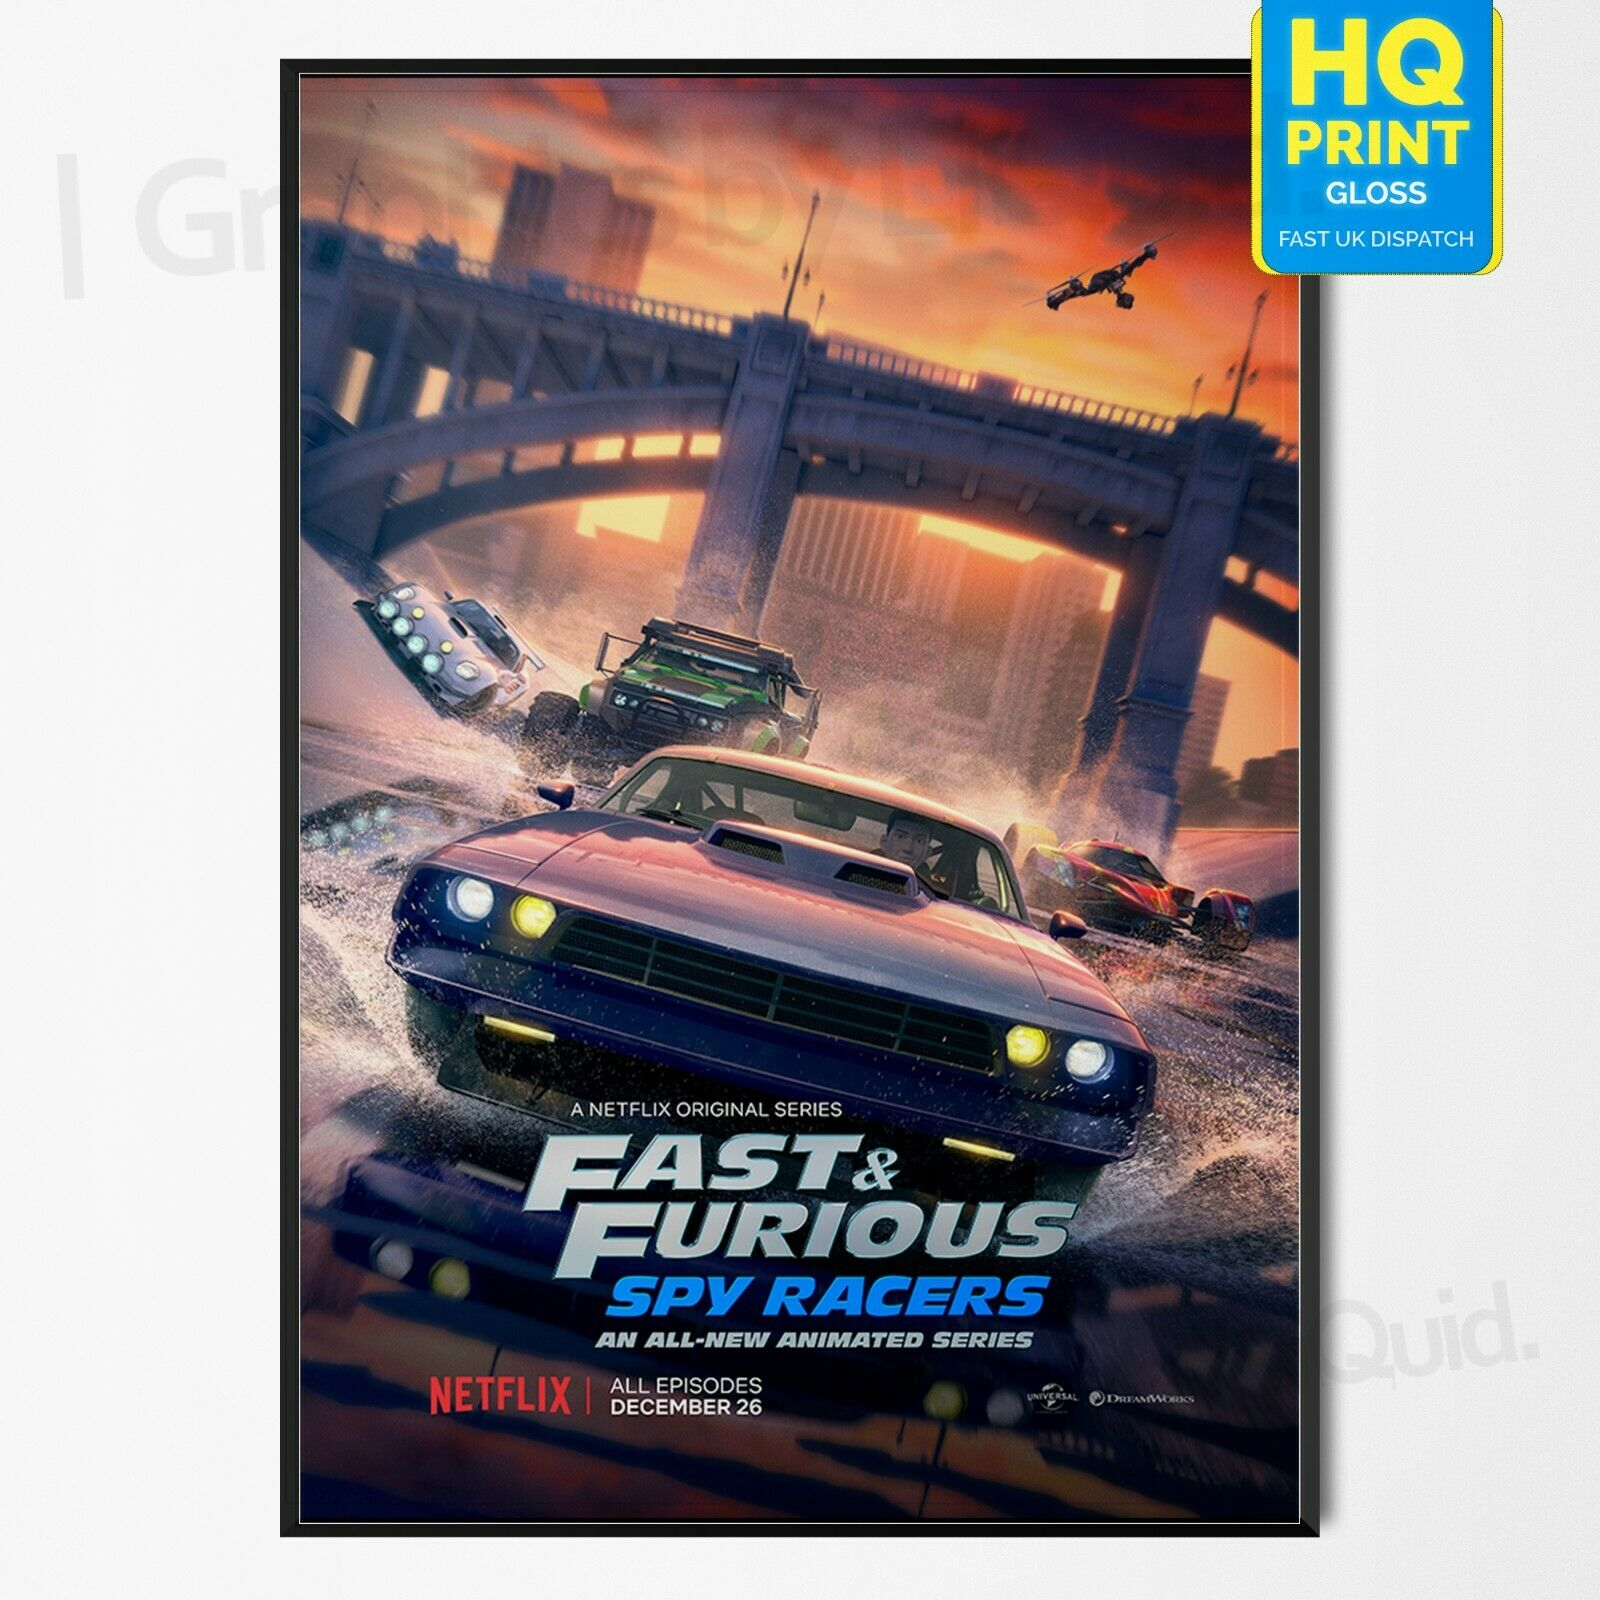 Fast And Furious 8 Movie Poster Print T496 A4 A3 A2 A1 A0|